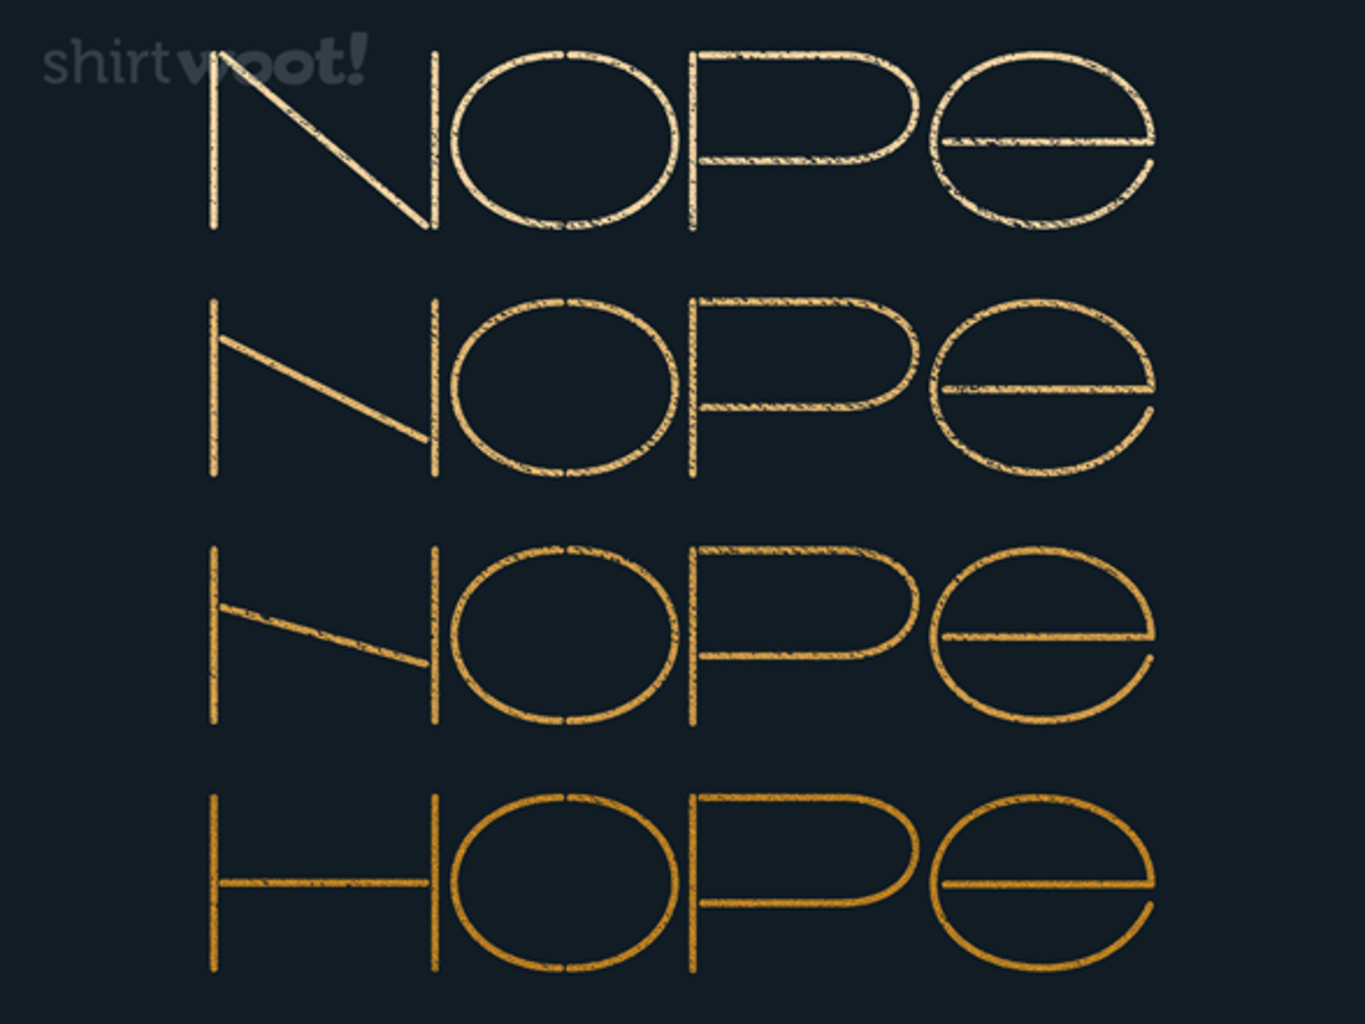 Woot!: Hopeful For Change